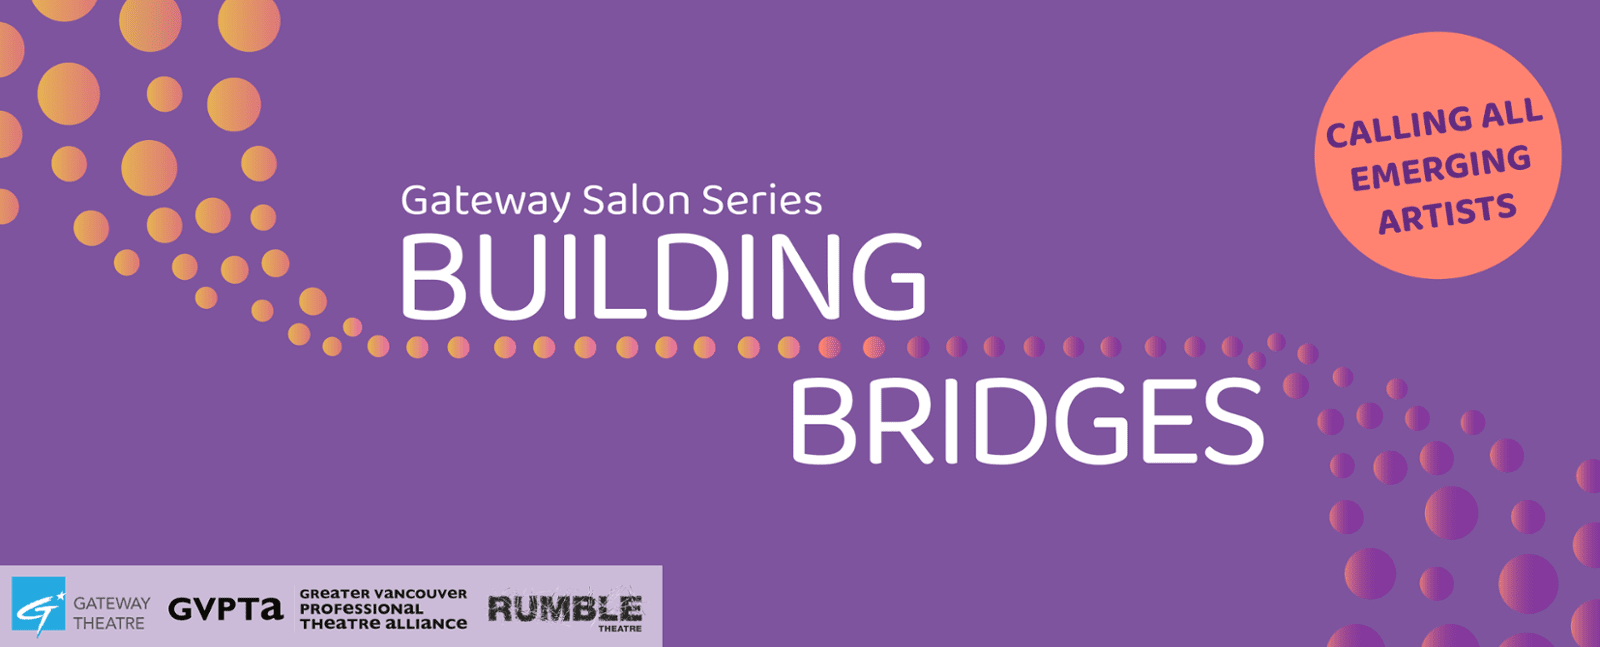 Gateway Salon Series: Building Bridges logo